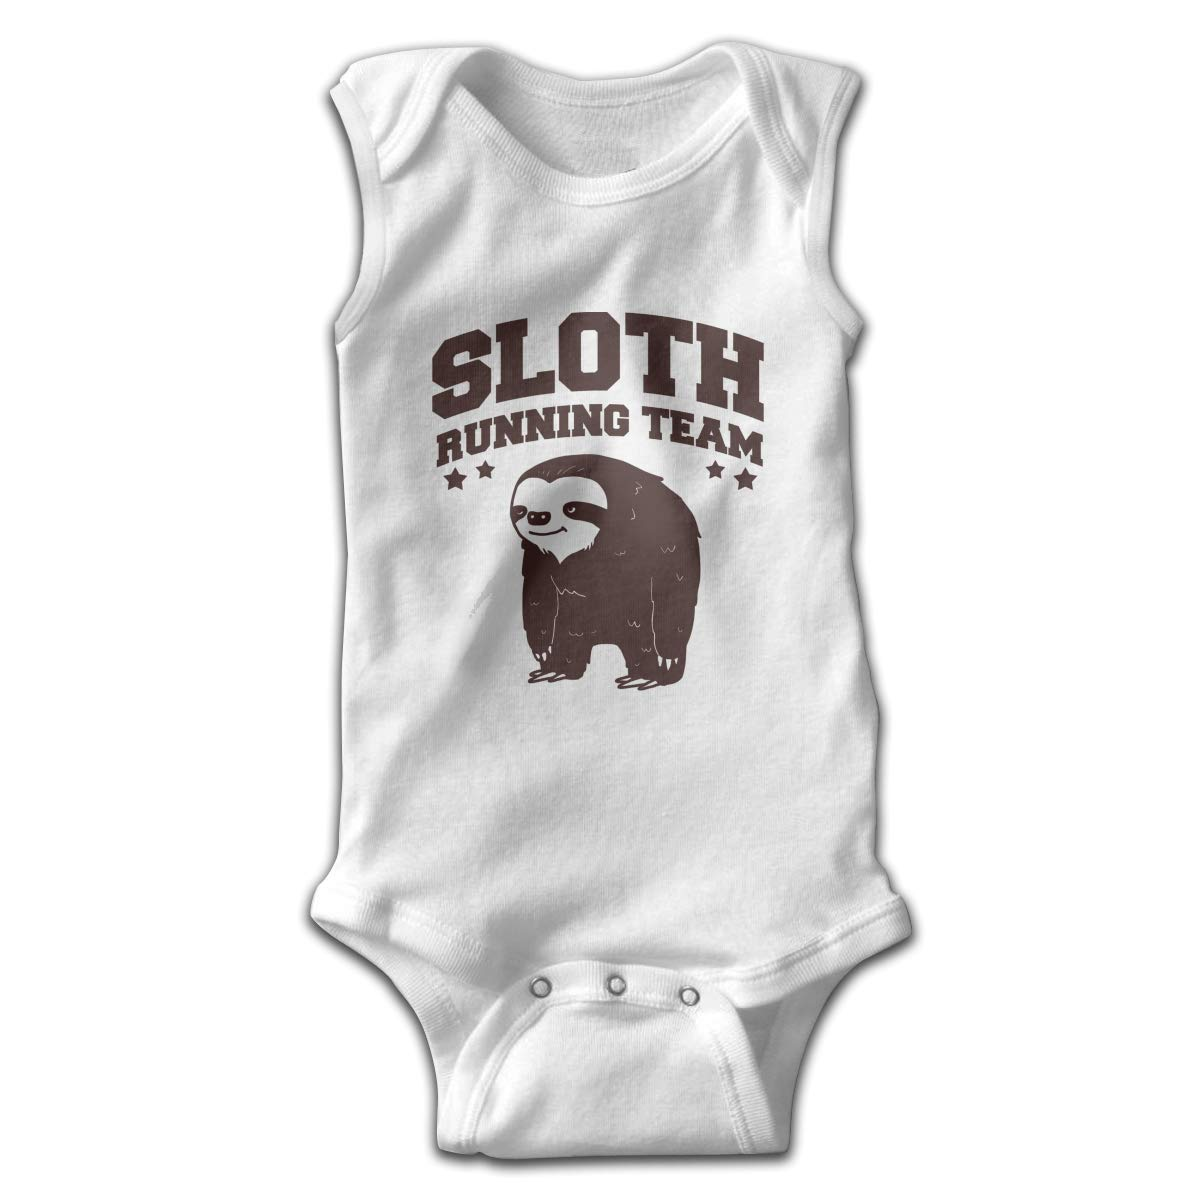 Efbj Infant Baby Girls Rompers Sleeveless Cotton Onesie,Sloth Running Team Outfit Autumn Pajamas